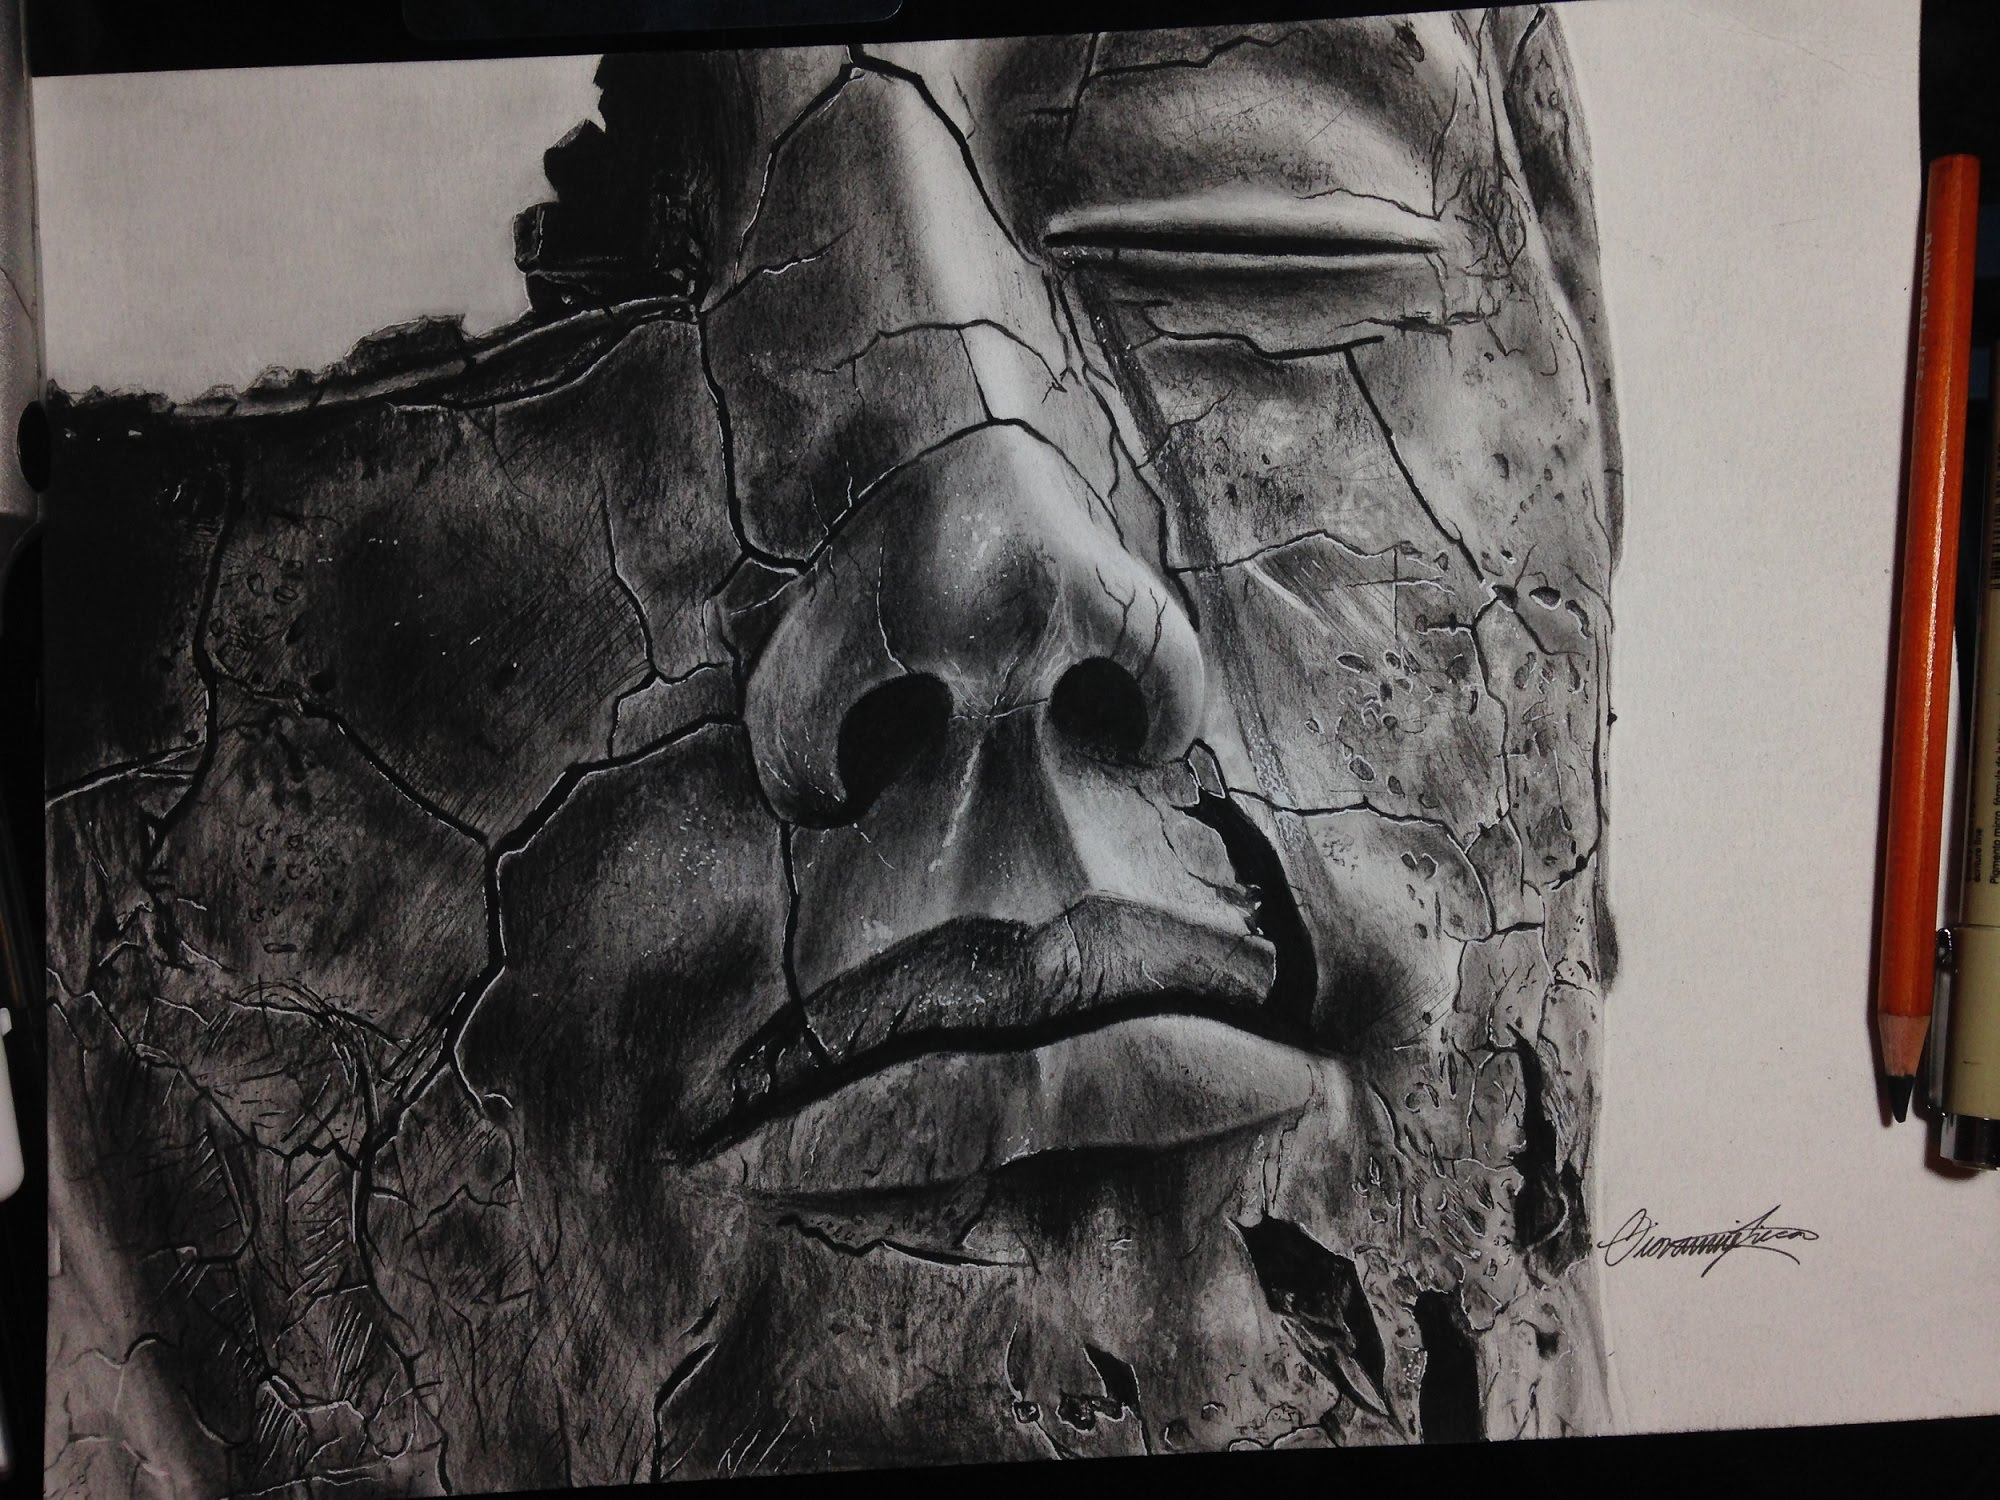 2000x1500 Broken Realistic Statue Drawing Timelapse